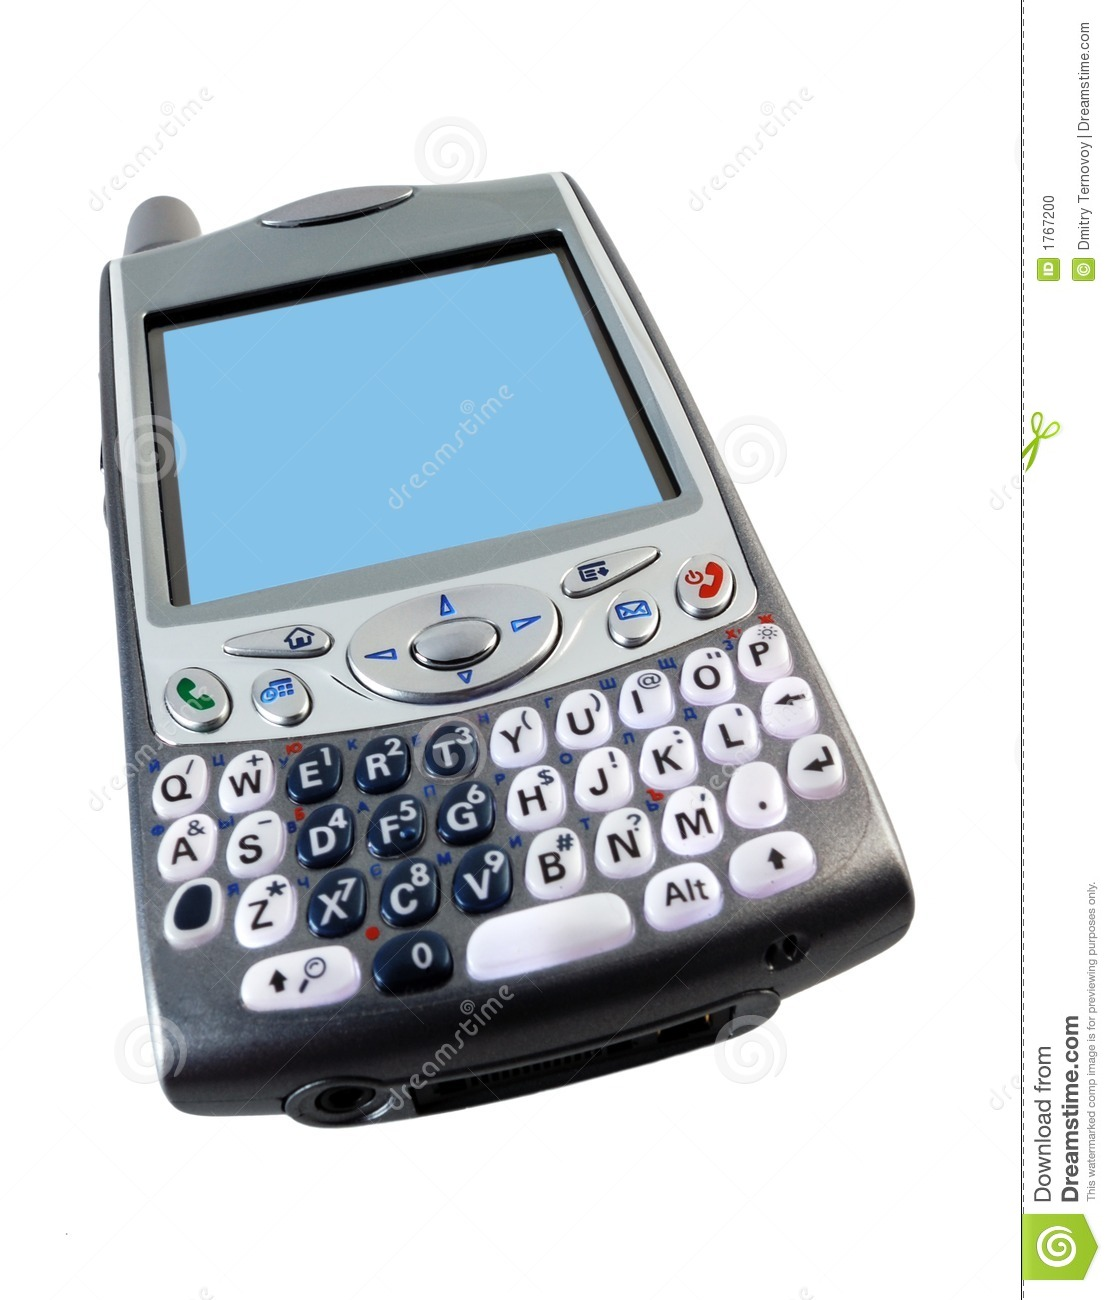 Pda cell phone